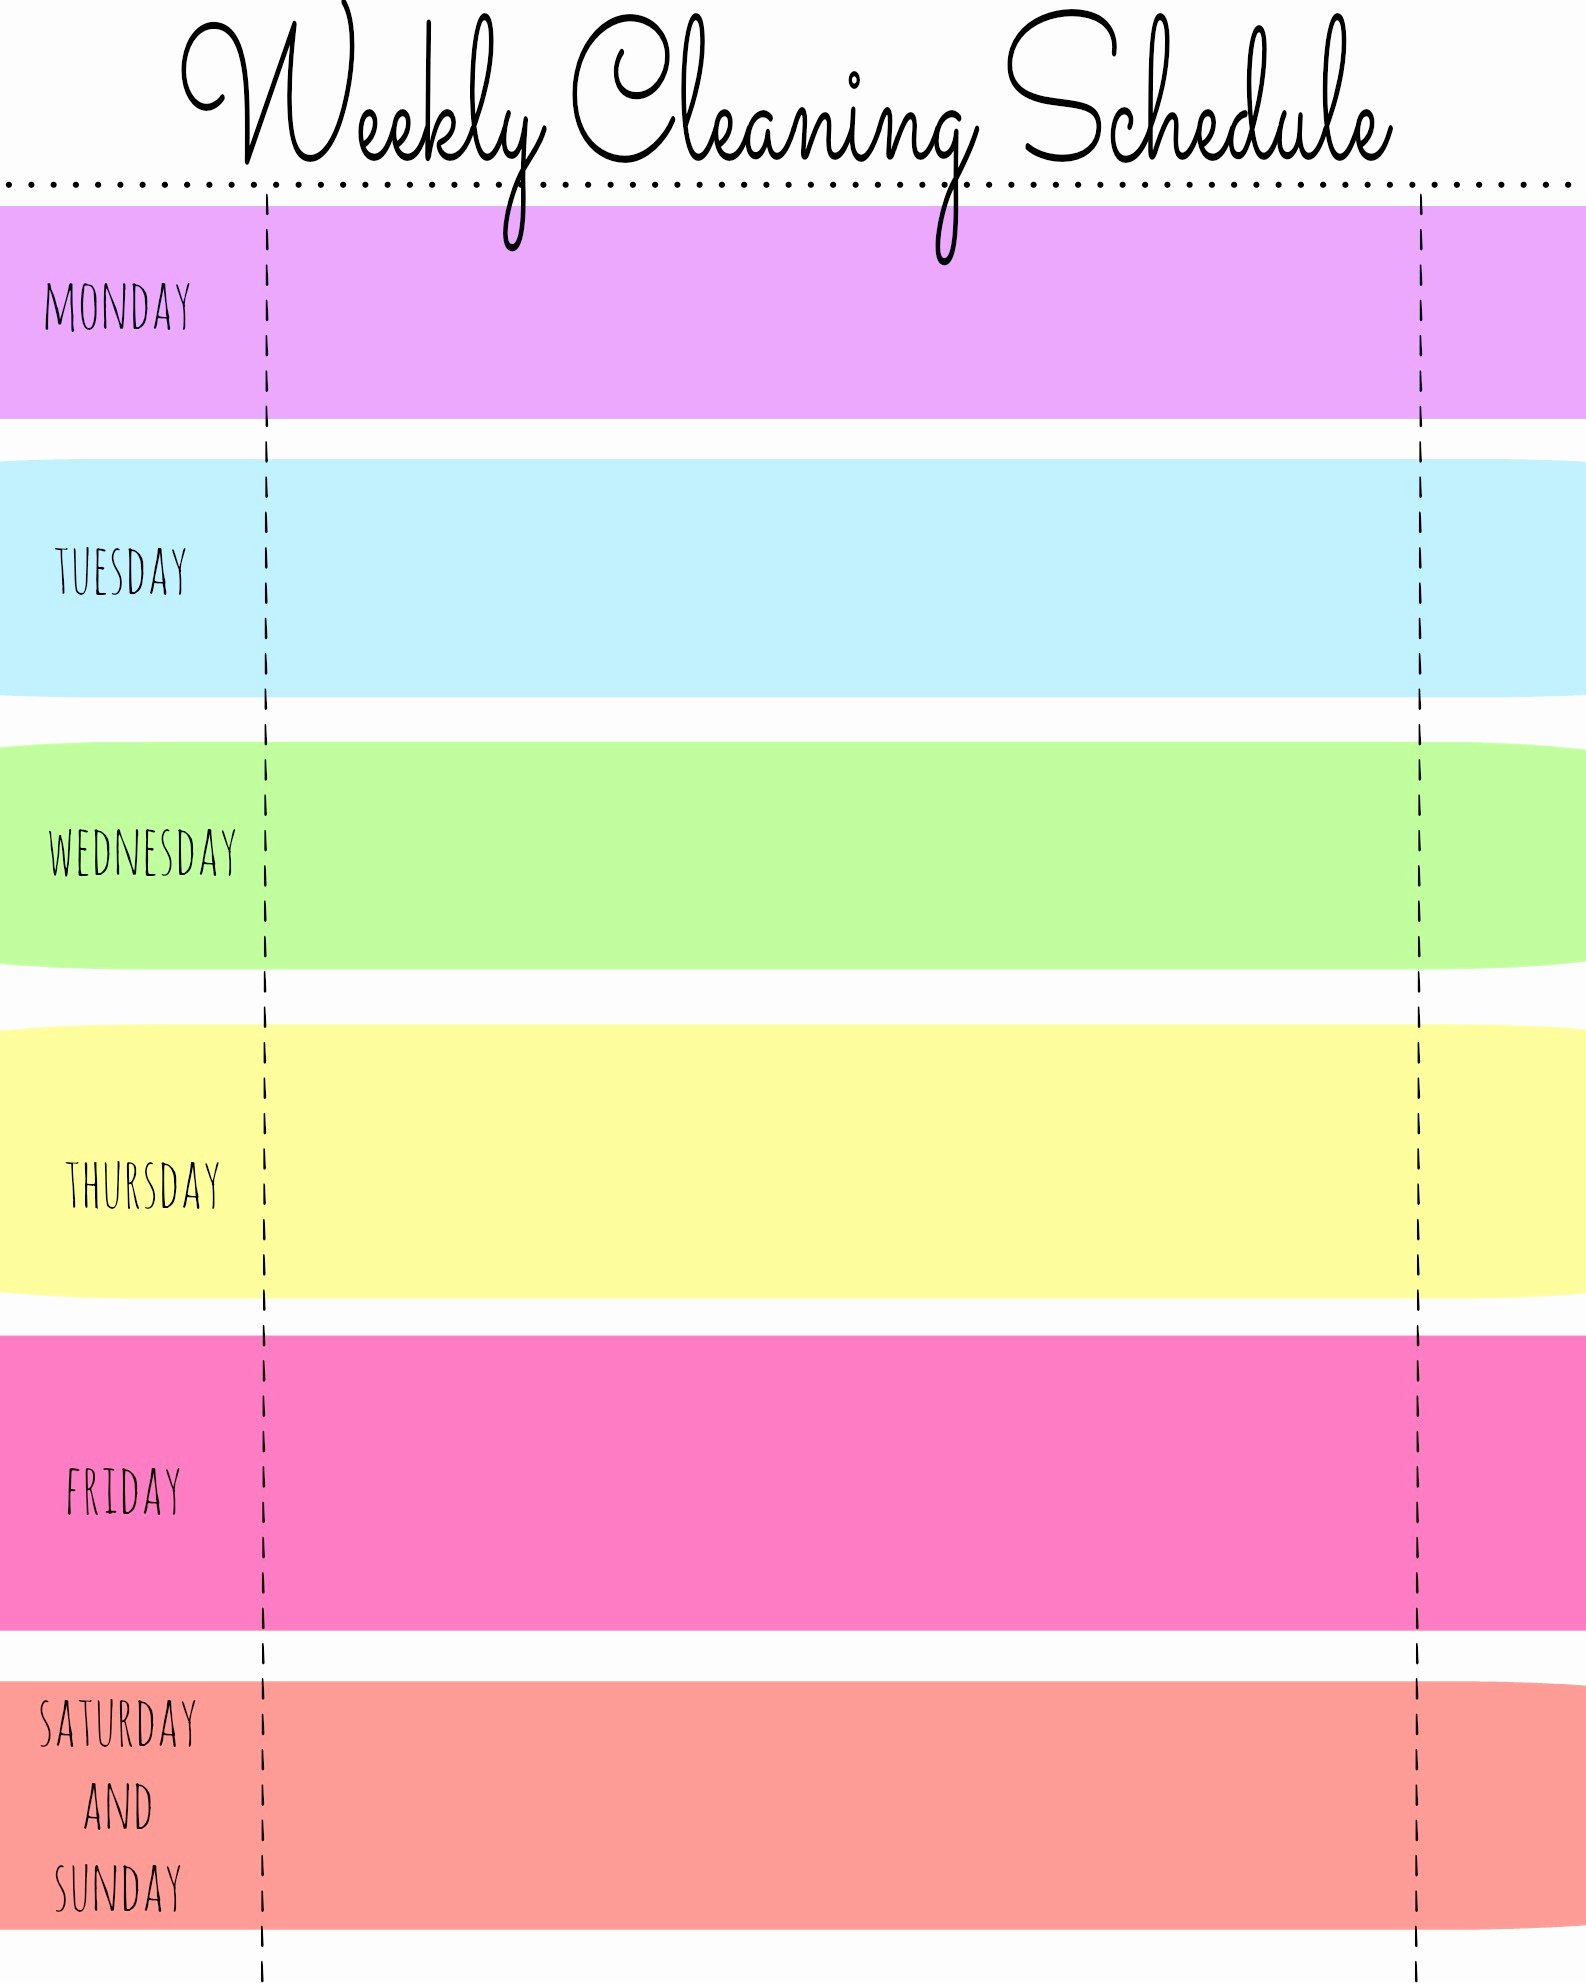 Work Cleaning Schedule Template Luxury Schedule Printable Gallery Category Page 1